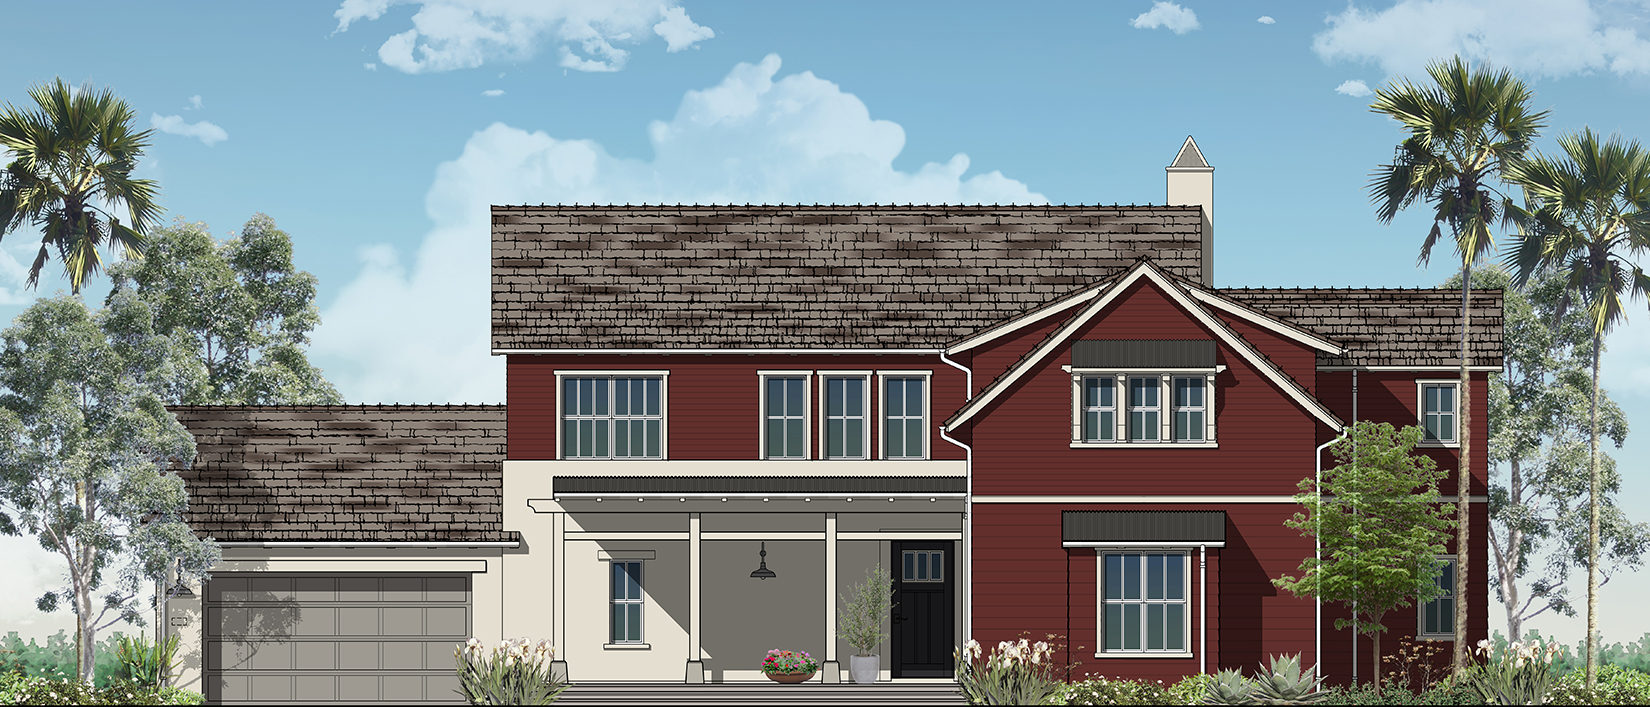 17066_A5B-ELEV-Front-Elevation-1650x707.jpg